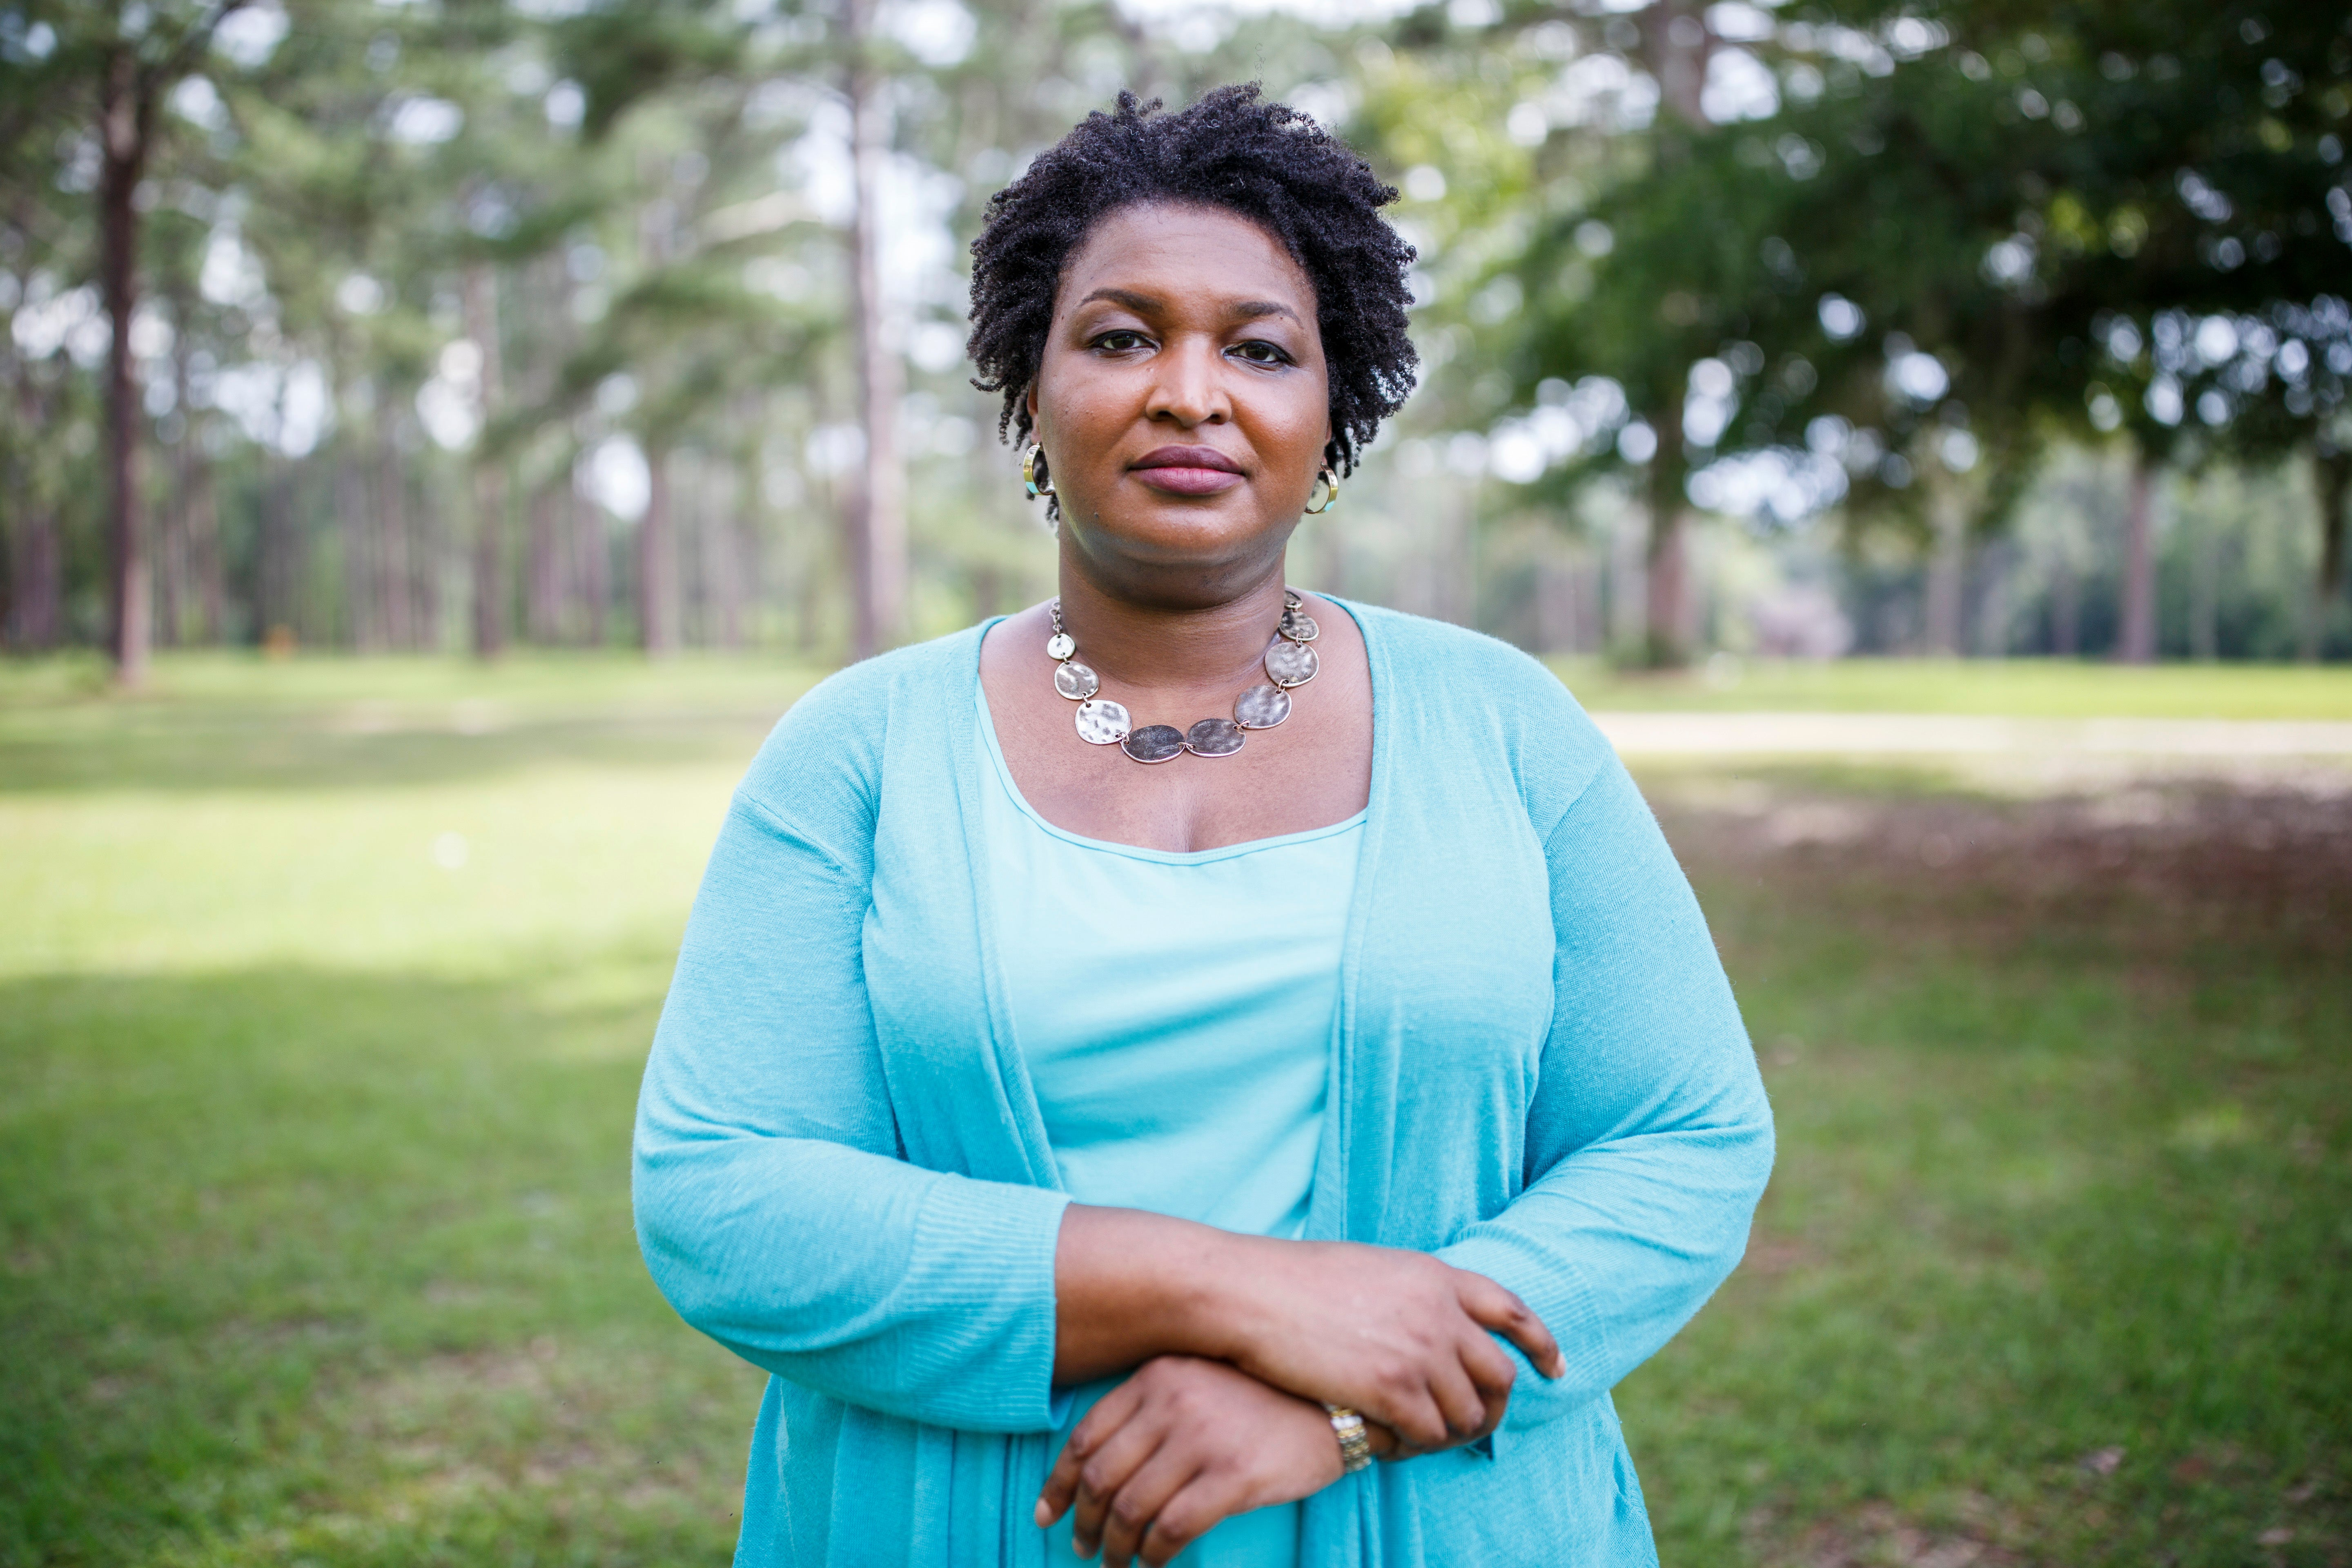 The Black Women's Agenda is America's Agenda, As Stacey Abrams Has Reminded Us